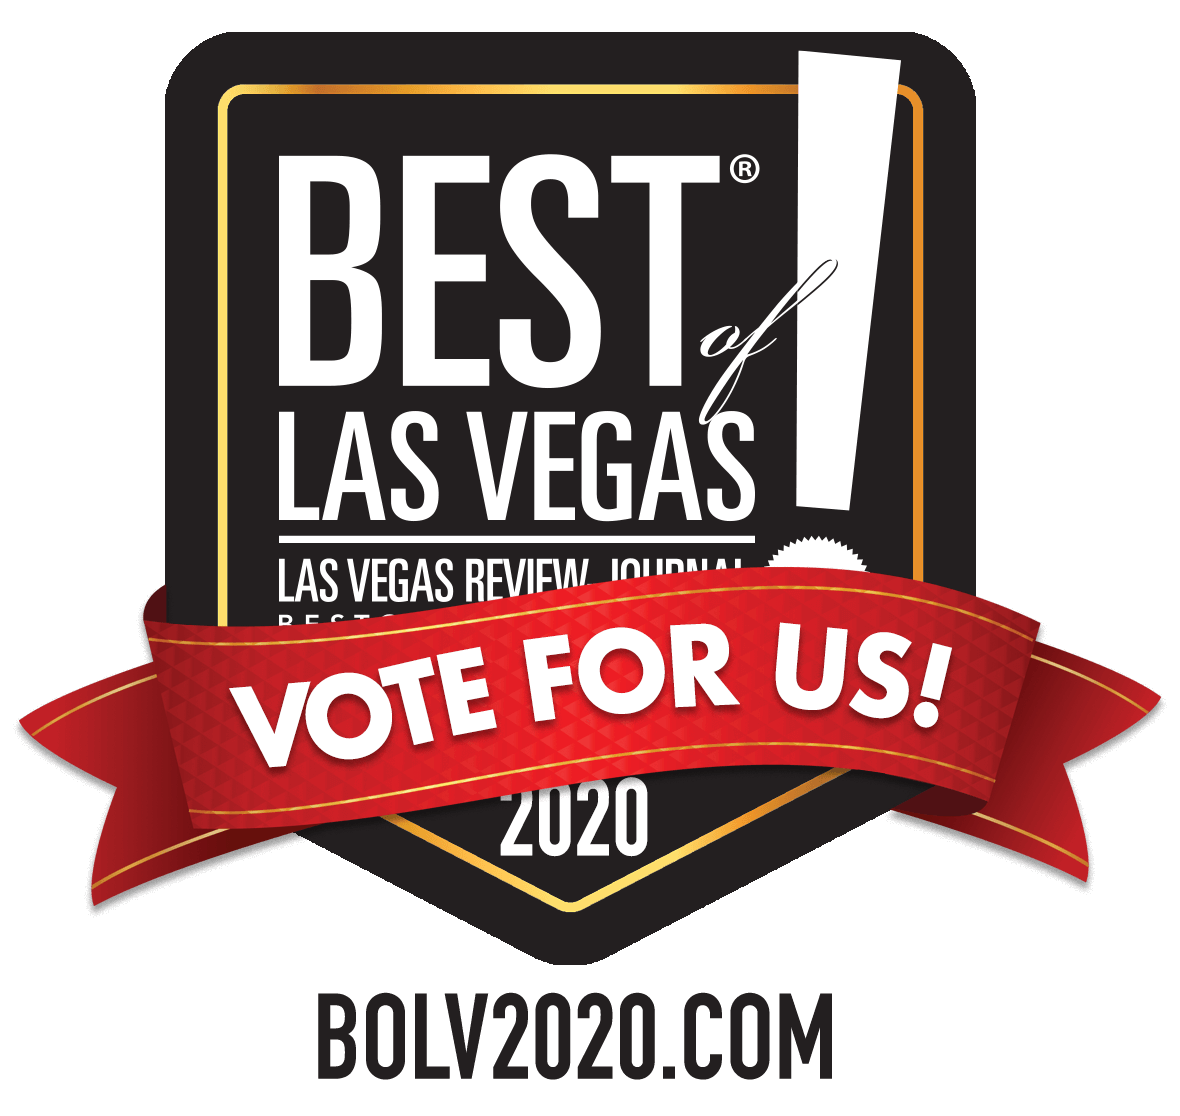 https://www.tuscanylv.com/wp-content/uploads/2020/09/bolv-vote.png